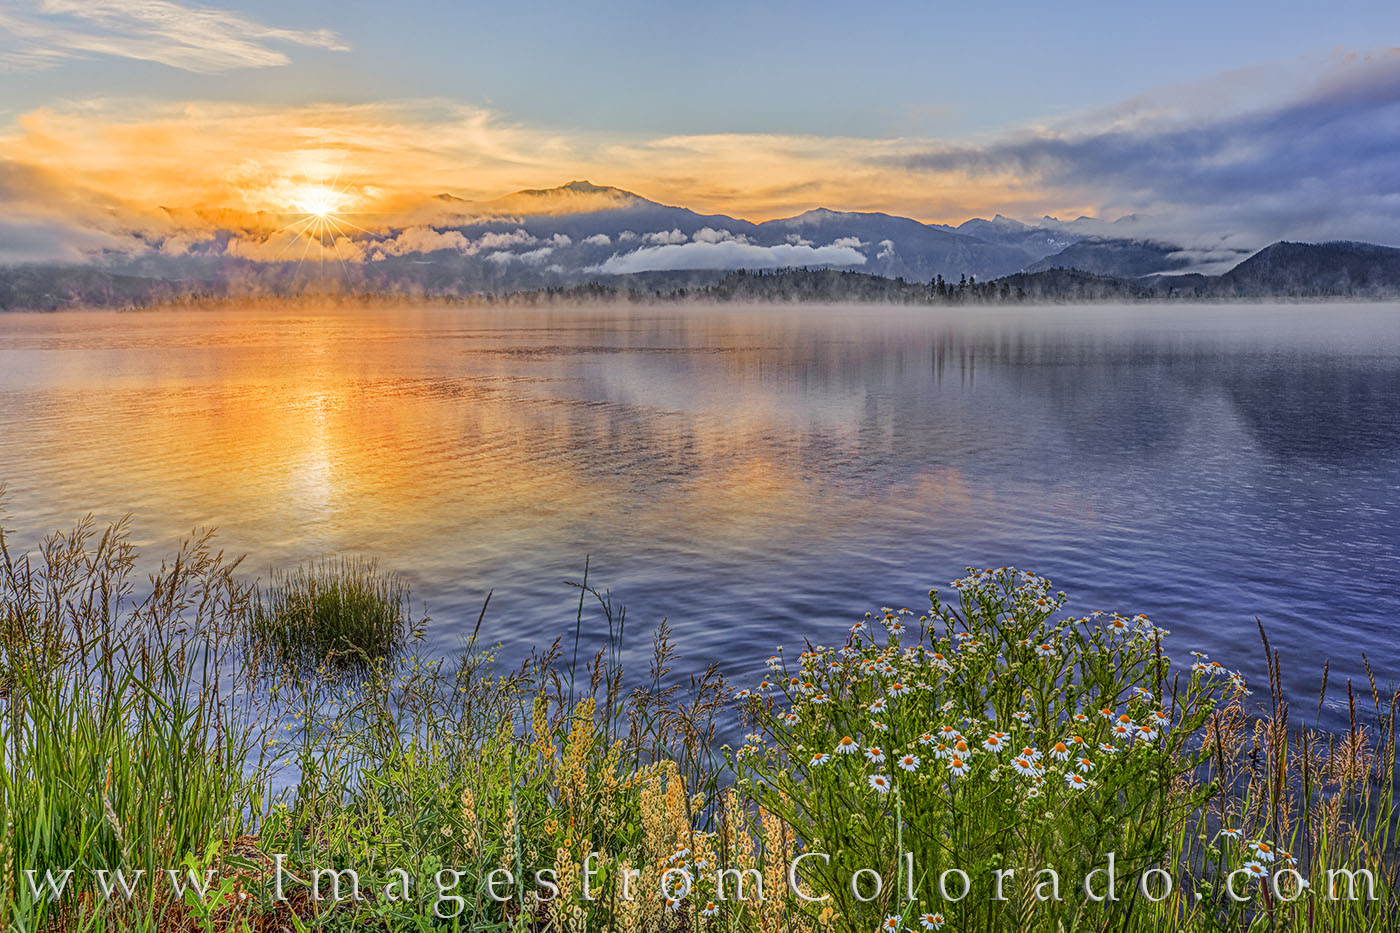 lake granby, grand lake, grand county, morning, fog, lake, rocky mountains, sunrise, wildflowers, daisies, photo